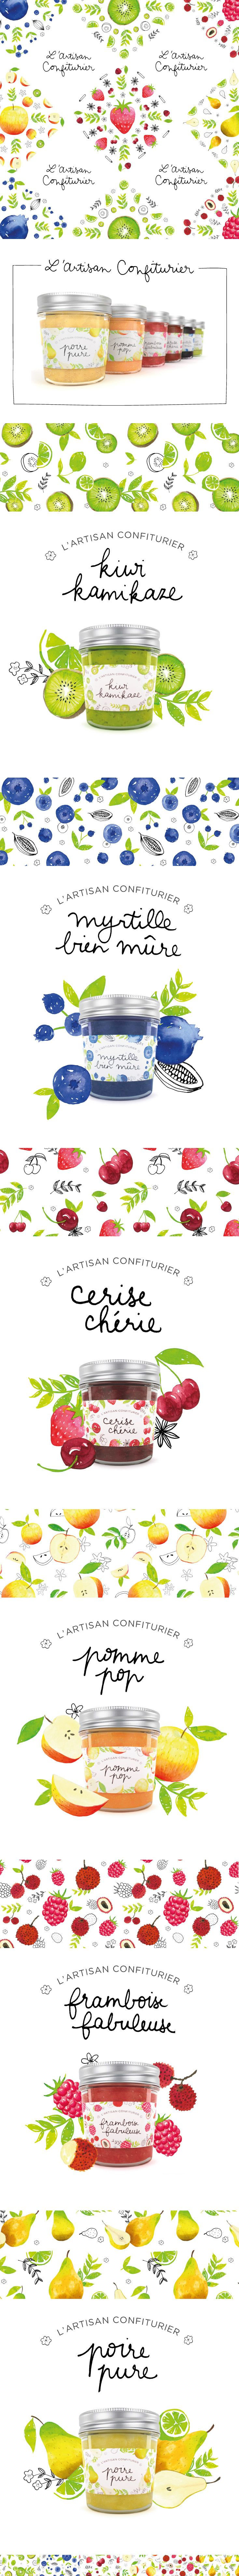 i like the way they presented it  L'Artisan Confiturier -  Illustrated Jam Packaging on Behance